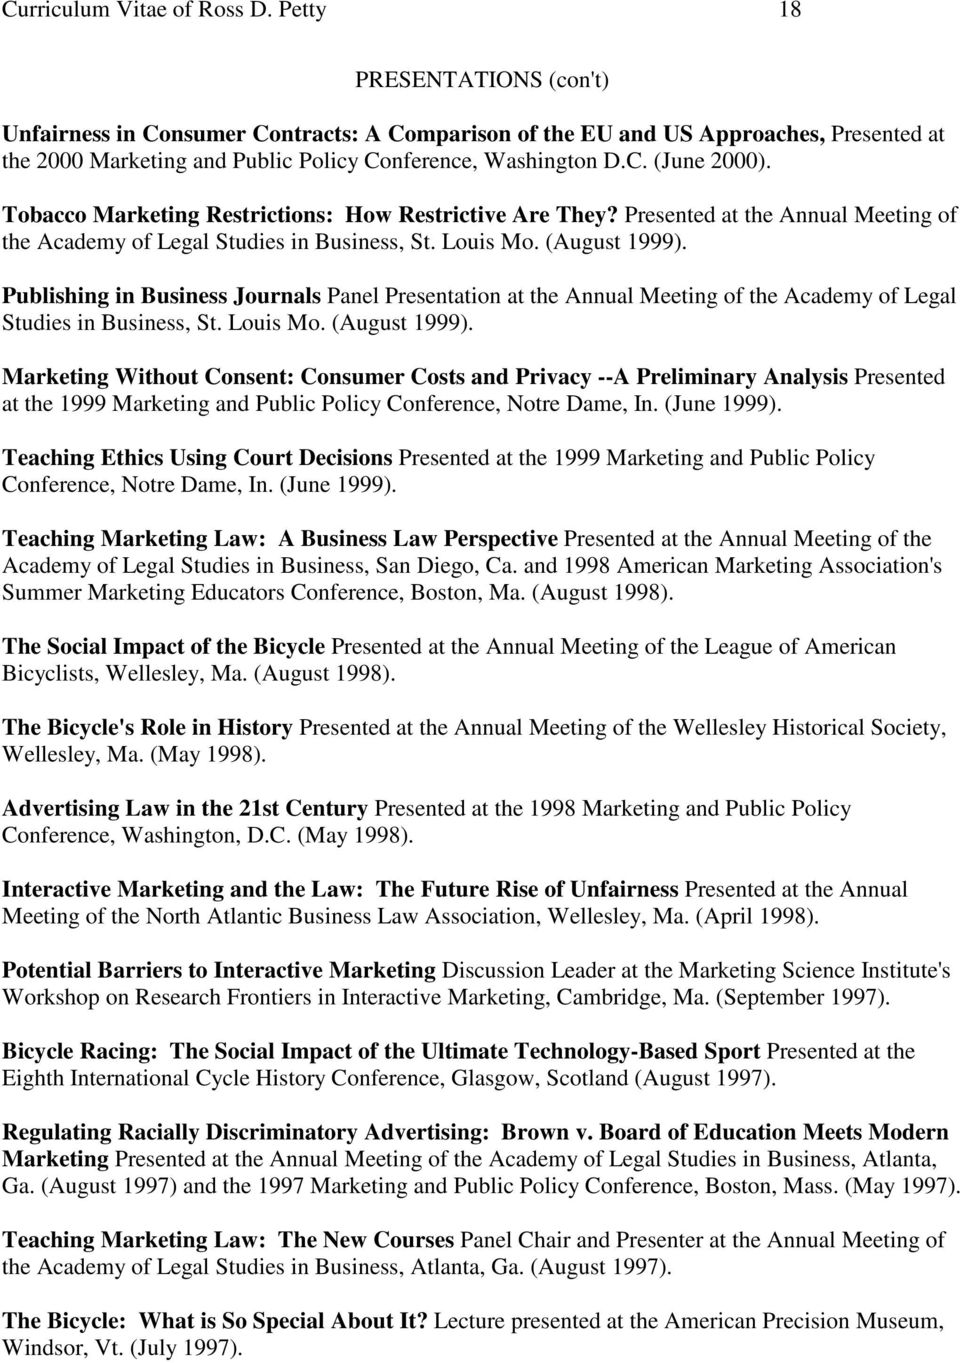 Tobacco Marketing Restrictions: How Restrictive Are They? Presented at the Annual Meeting of the Academy of Legal Studies in Business, St. Louis Mo. (August 1999).